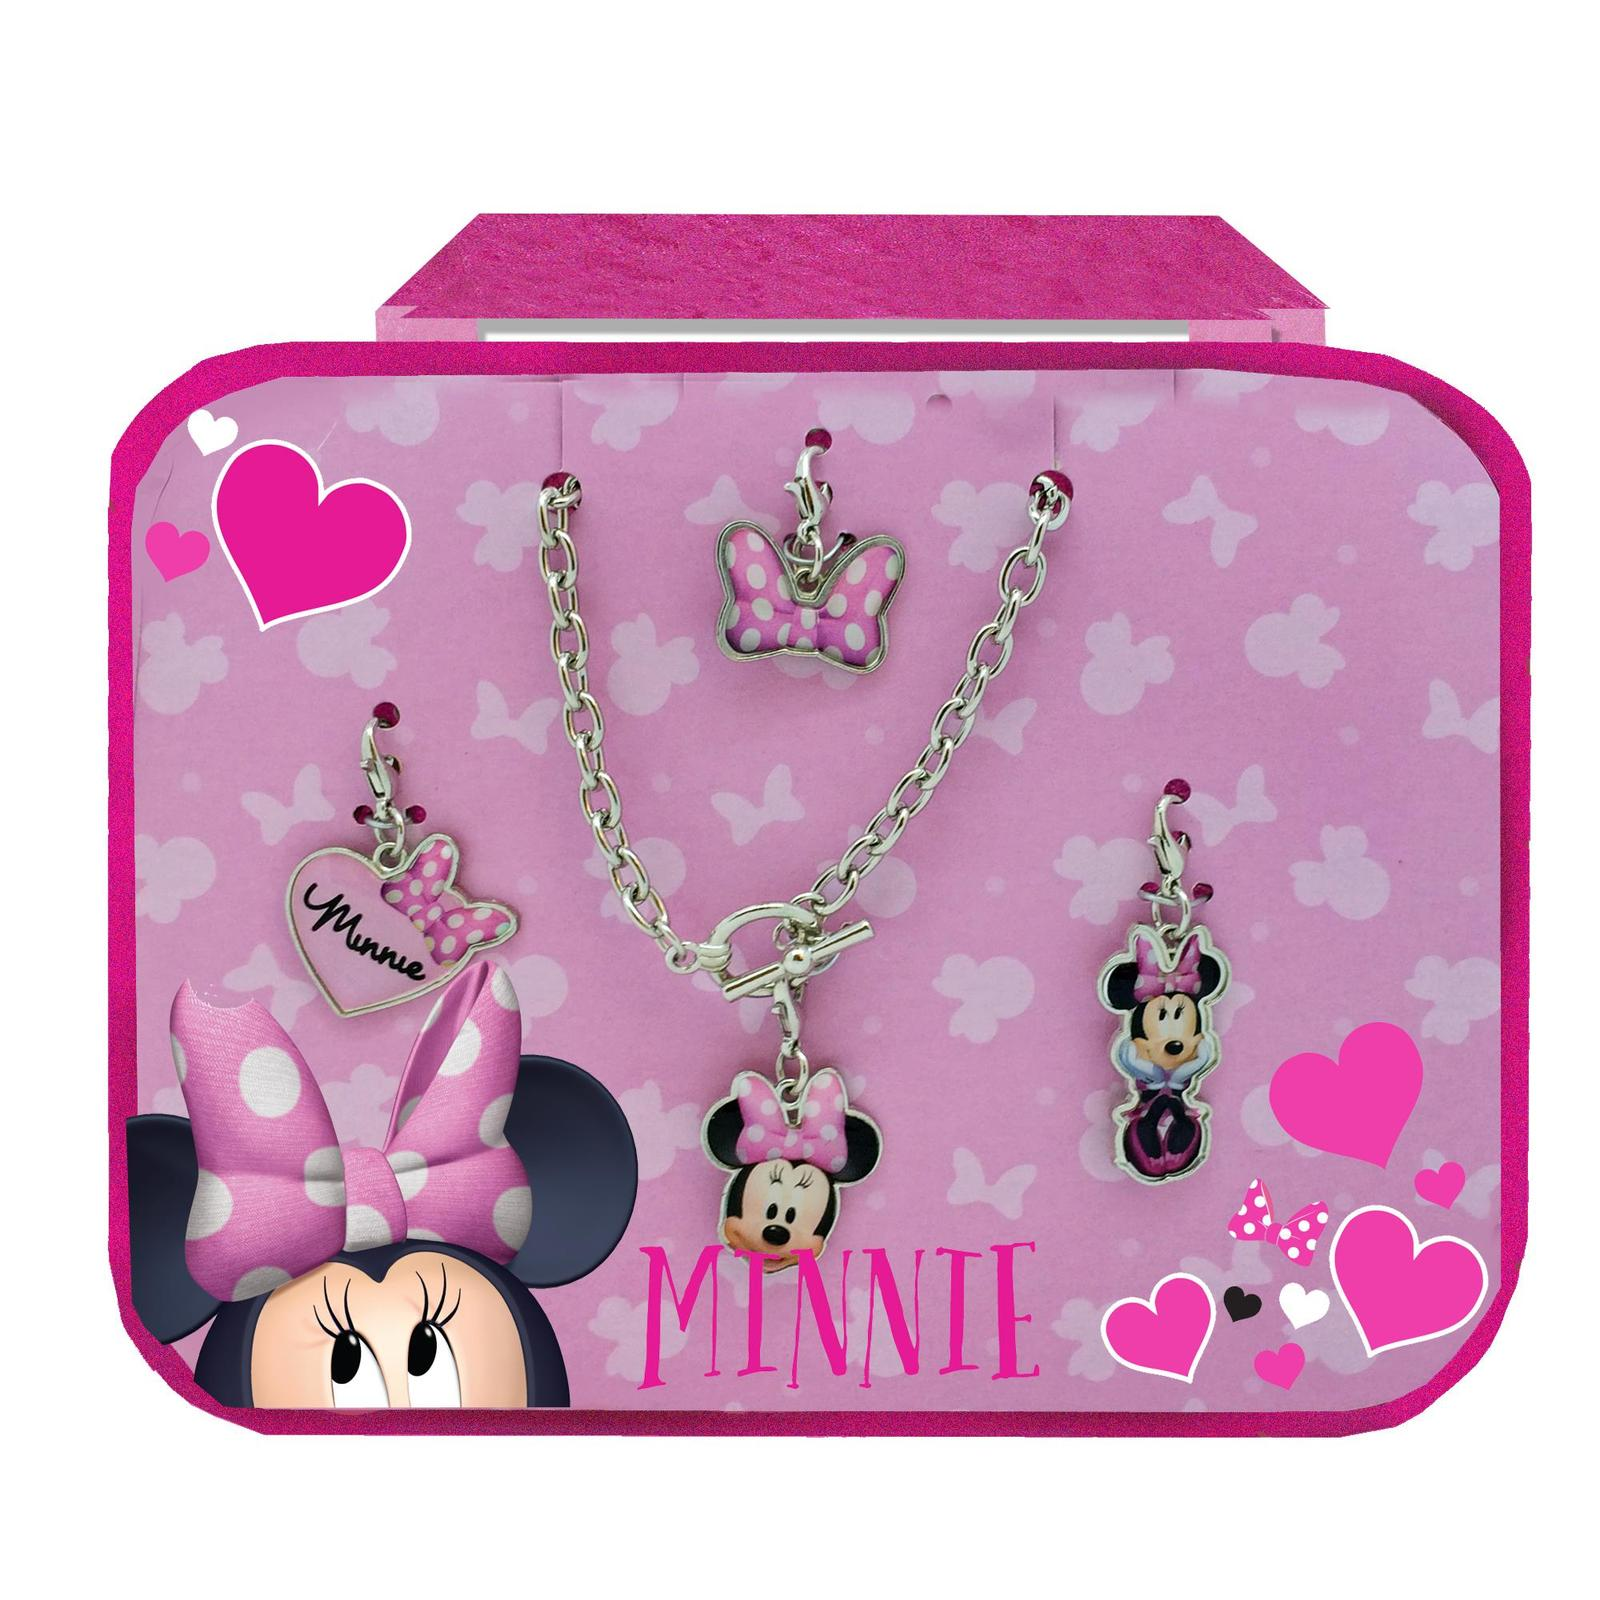 Minnie mouse glitter bag and jewelry set minnie for Minnie mouse jewelry box